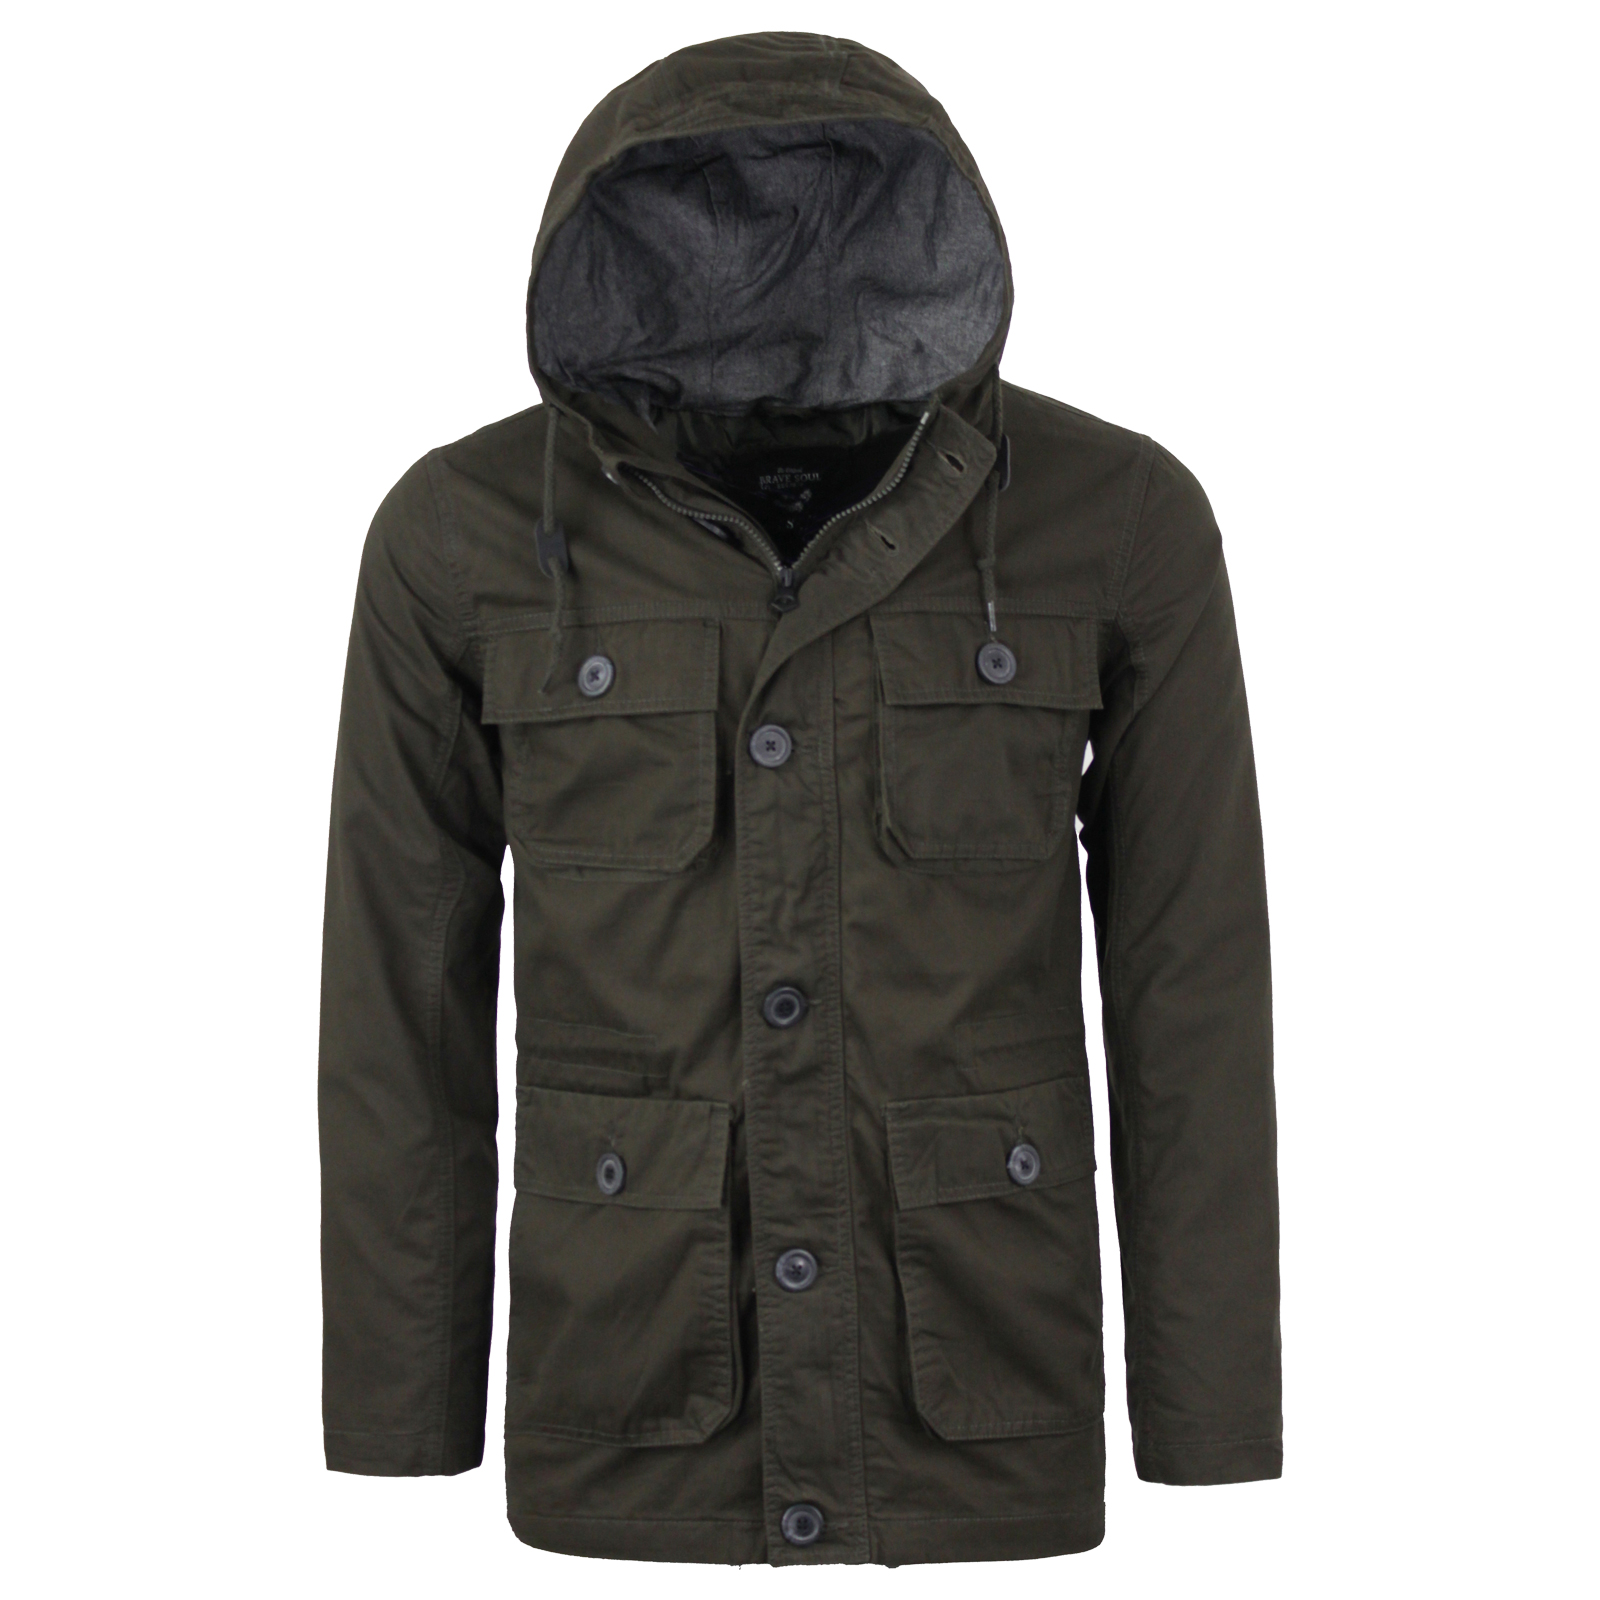 24fc8a7f234 Details about Mens Brave Soul Lightweight Cotton Hooded Military Style  Jacket New Sizes S-XL